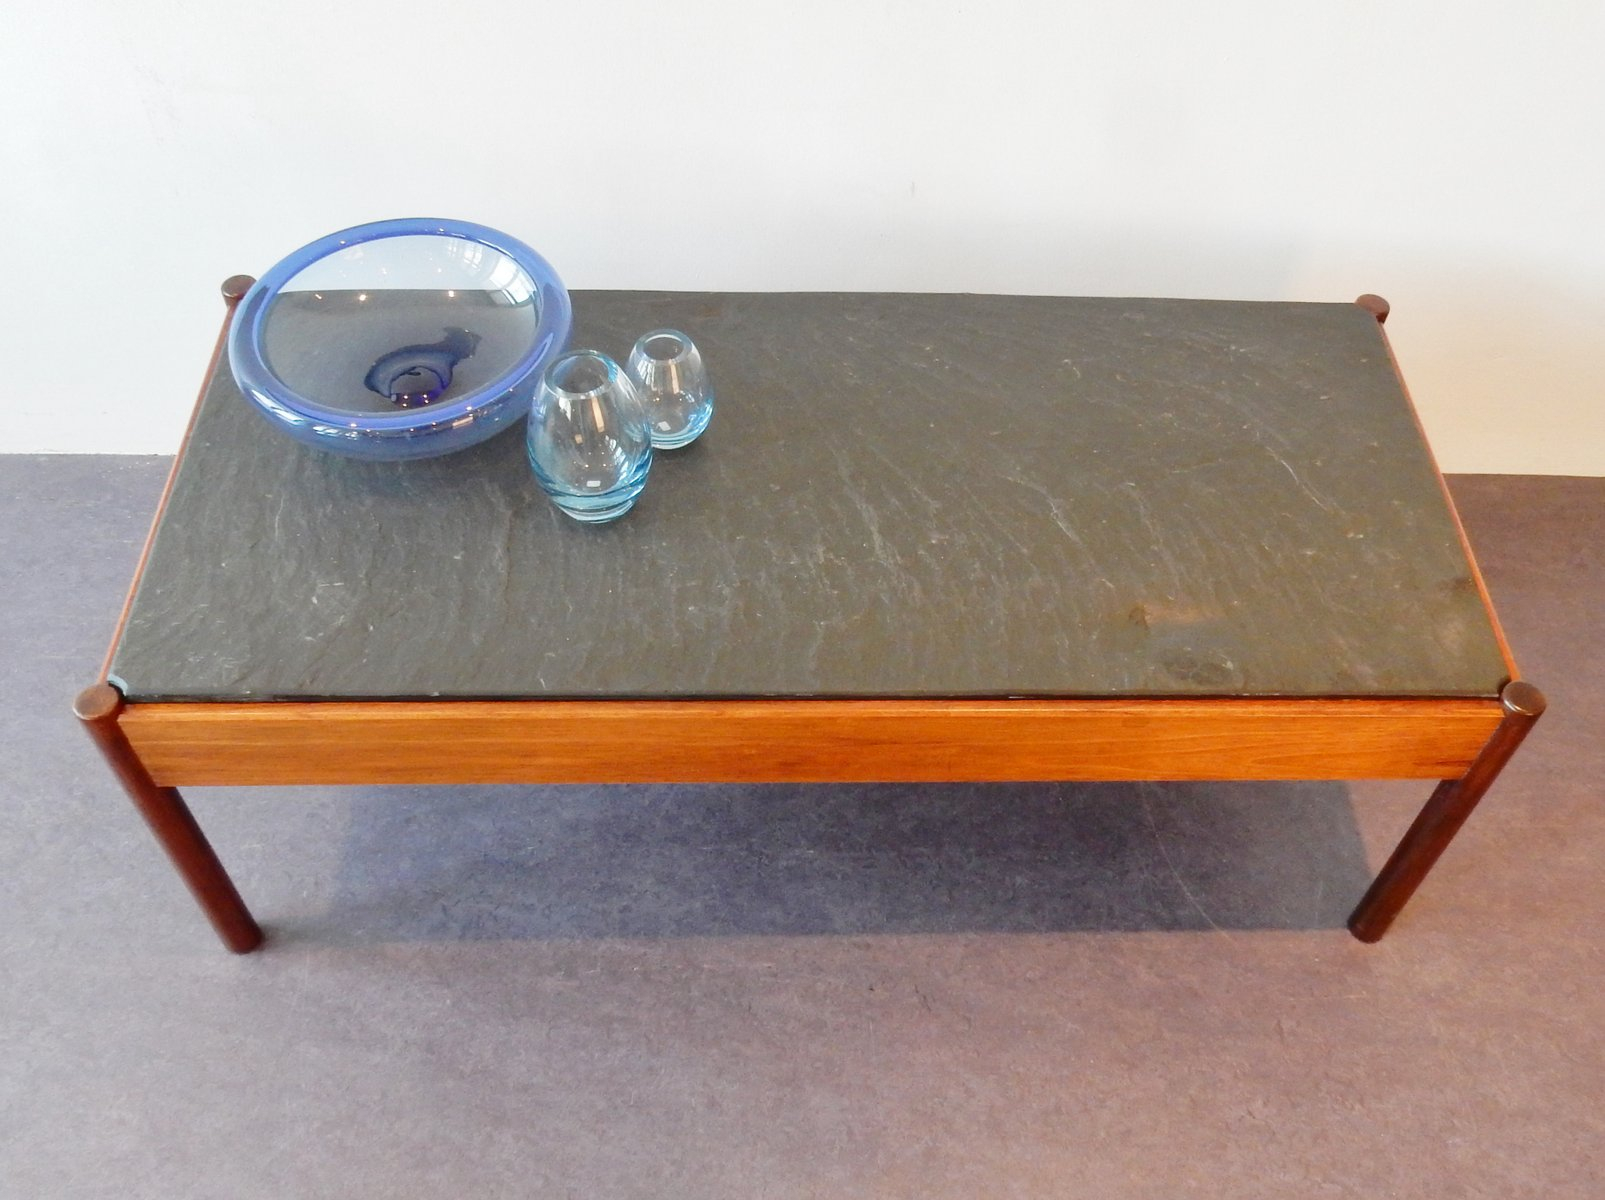 Vintage stone tile coffee table for sale at pamono vintage stone tile coffee table 9 56500 geotapseo Choice Image